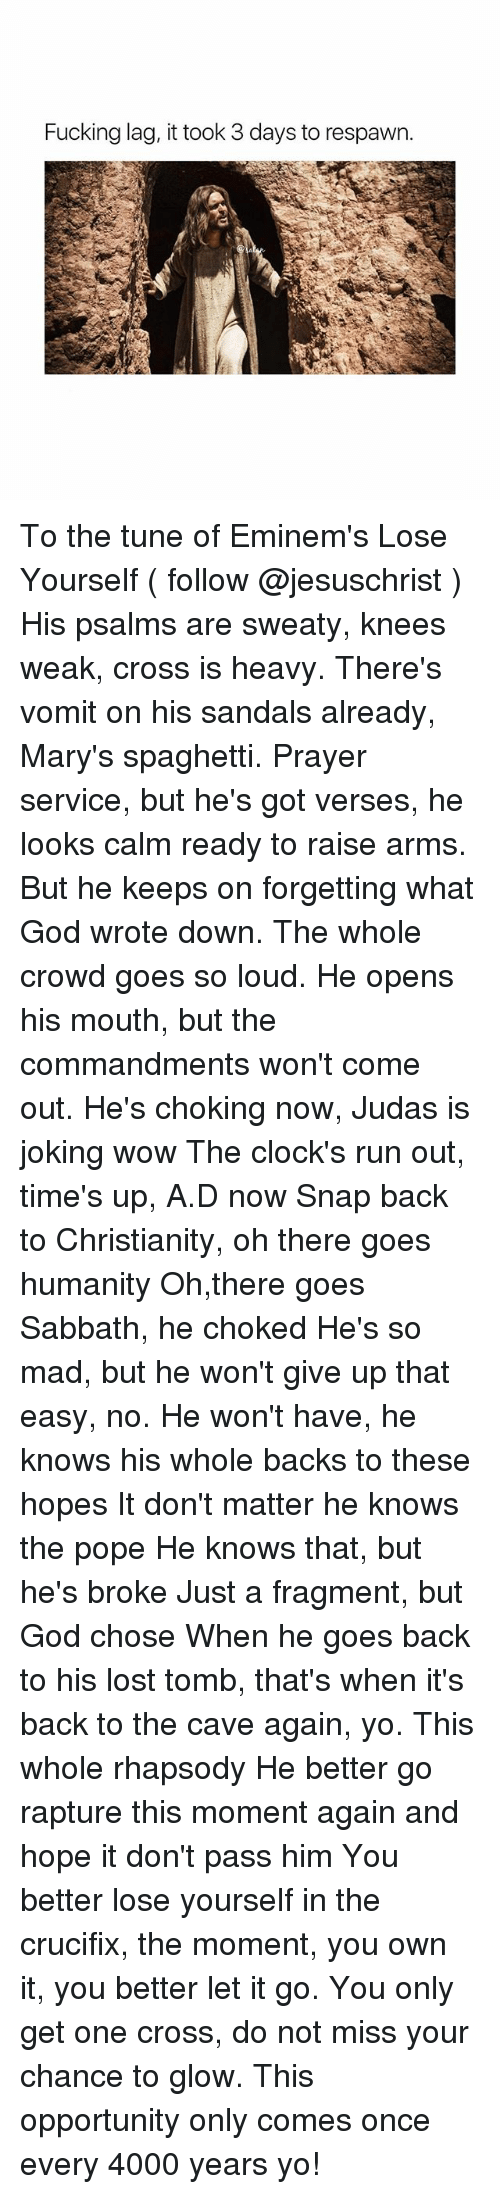 Fucking, God, and Lose Yourself: Fucking lag, it took 3 days to respawn To the tune of Eminem's Lose Yourself ( follow @jesuschrist ) His psalms are sweaty, knees weak, cross is heavy. There's vomit on his sandals already, Mary's spaghetti. Prayer service, but he's got verses, he looks calm ready to raise arms. But he keeps on forgetting what God wrote down. The whole crowd goes so loud. He opens his mouth, but the commandments won't come out. He's choking now, Judas is joking wow The clock's run out, time's up, A.D now Snap back to Christianity, oh there goes humanity Oh,there goes Sabbath, he choked He's so mad, but he won't give up that easy, no. He won't have, he knows his whole backs to these hopes It don't matter he knows the pope He knows that, but he's broke Just a fragment, but God chose When he goes back to his lost tomb, that's when it's back to the cave again, yo. This whole rhapsody He better go rapture this moment again and hope it don't pass him You better lose yourself in the crucifix, the moment, you own it, you better let it go. You only get one cross, do not miss your chance to glow. This opportunity only comes once every 4000 years yo!